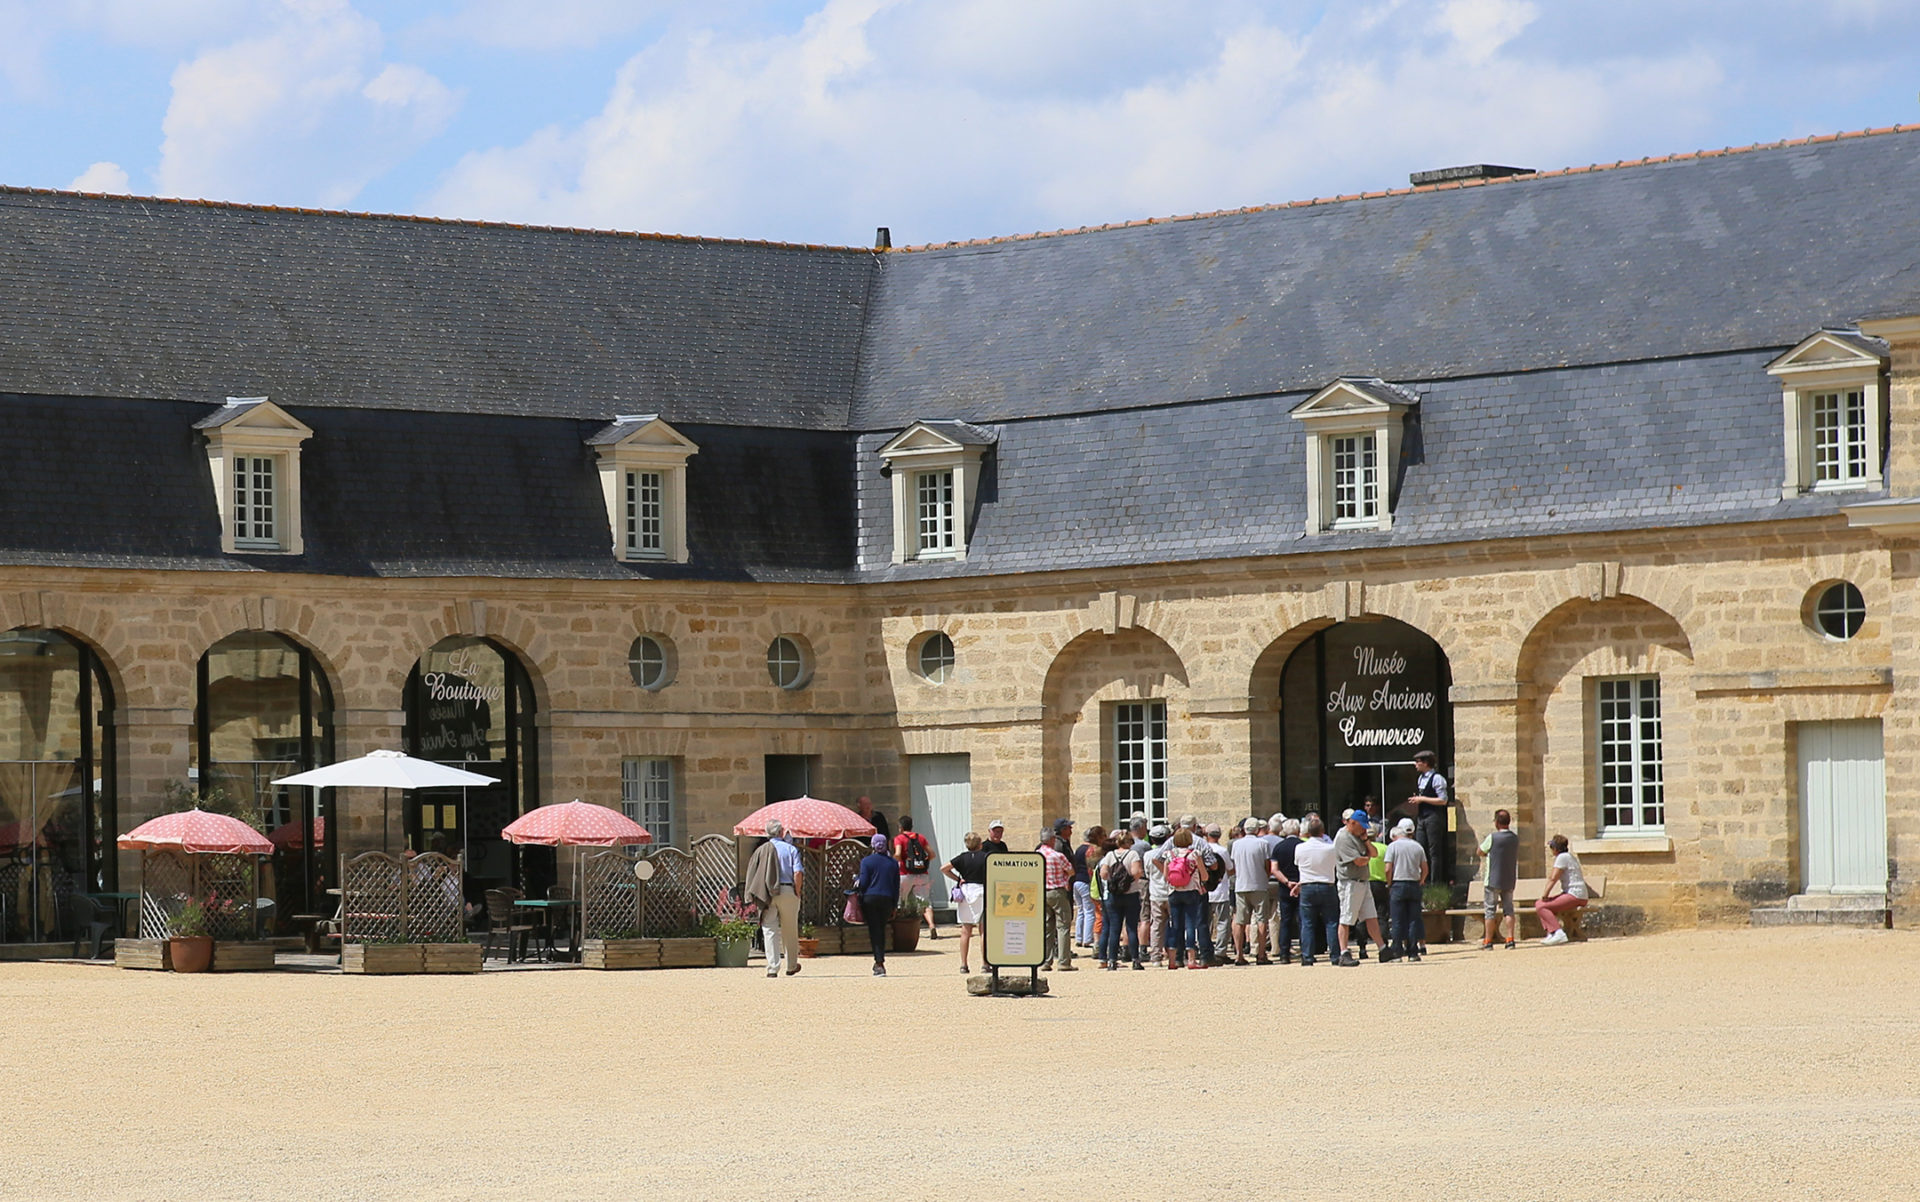 Musee_anciens_commerces